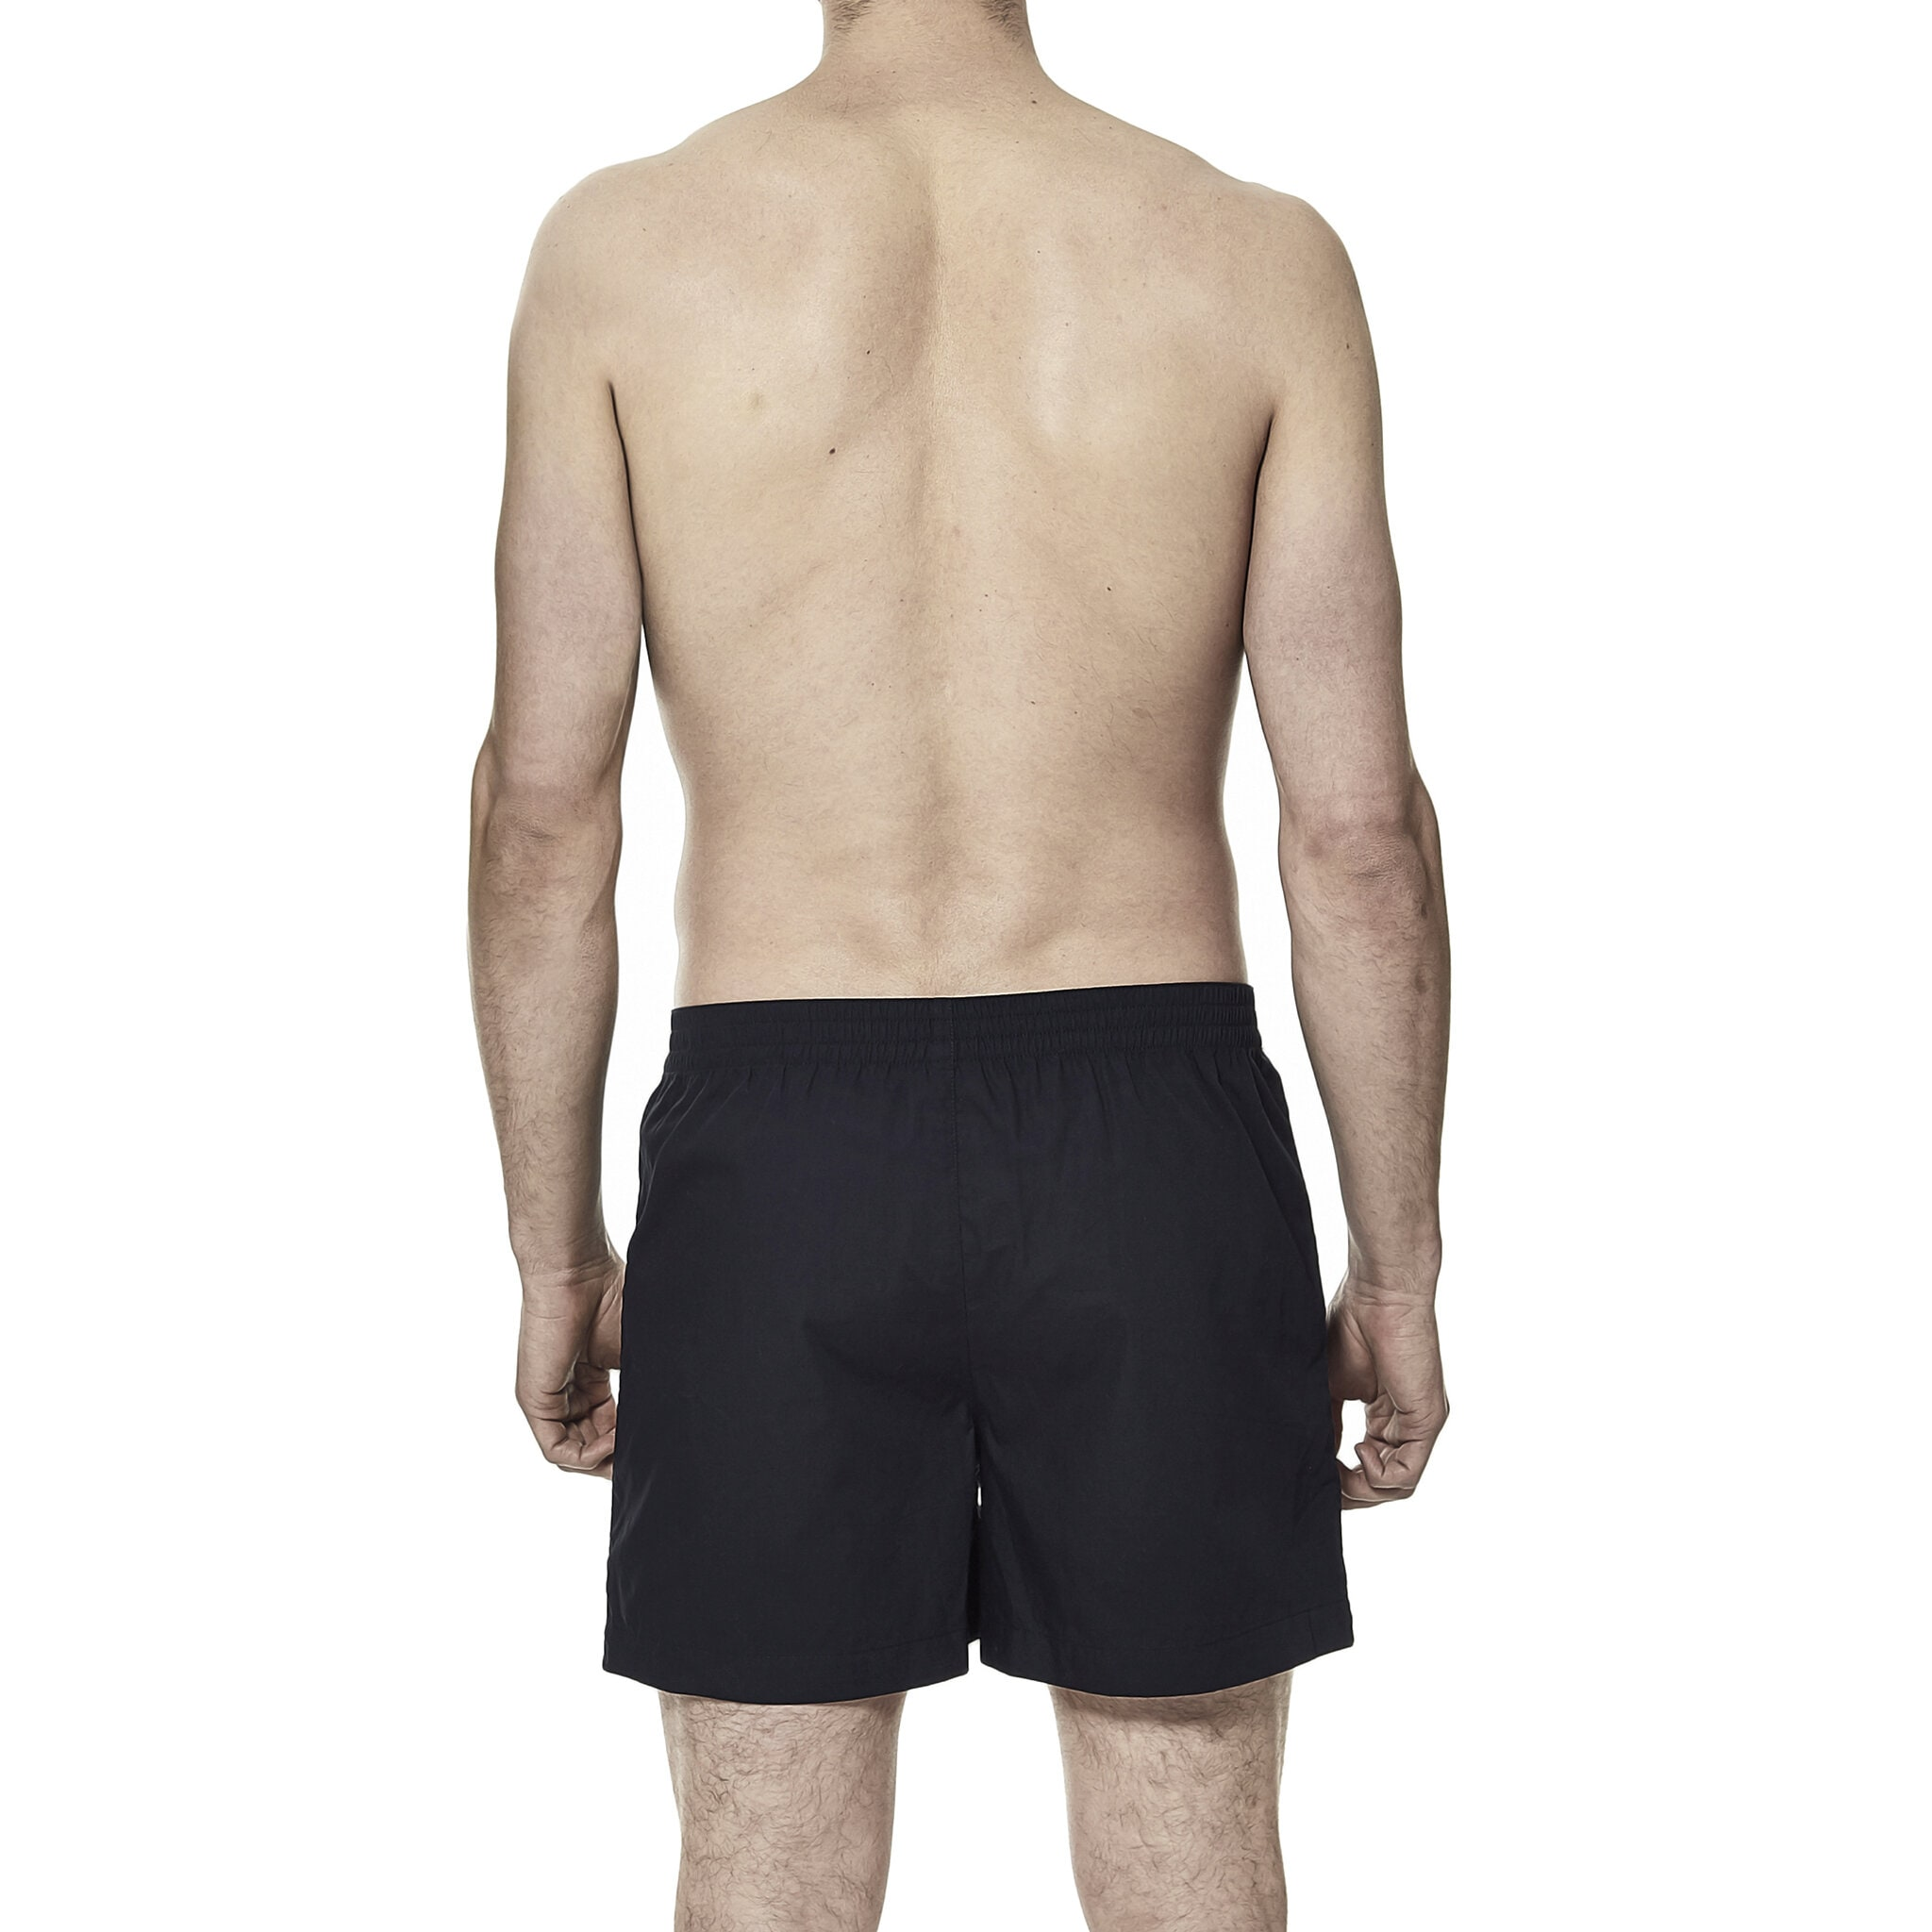 203204_Man_Boxer_Short_Dark-Navy_3